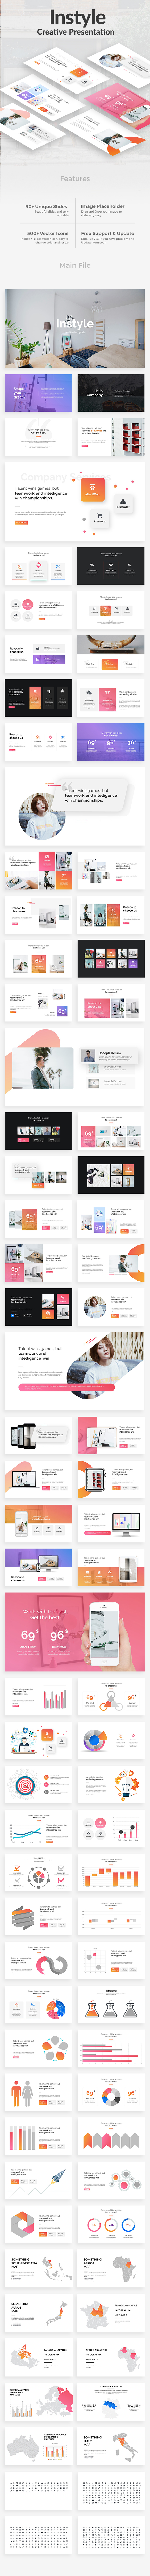 GraphicRiver Instyle Creative Google Slide Template 21032599